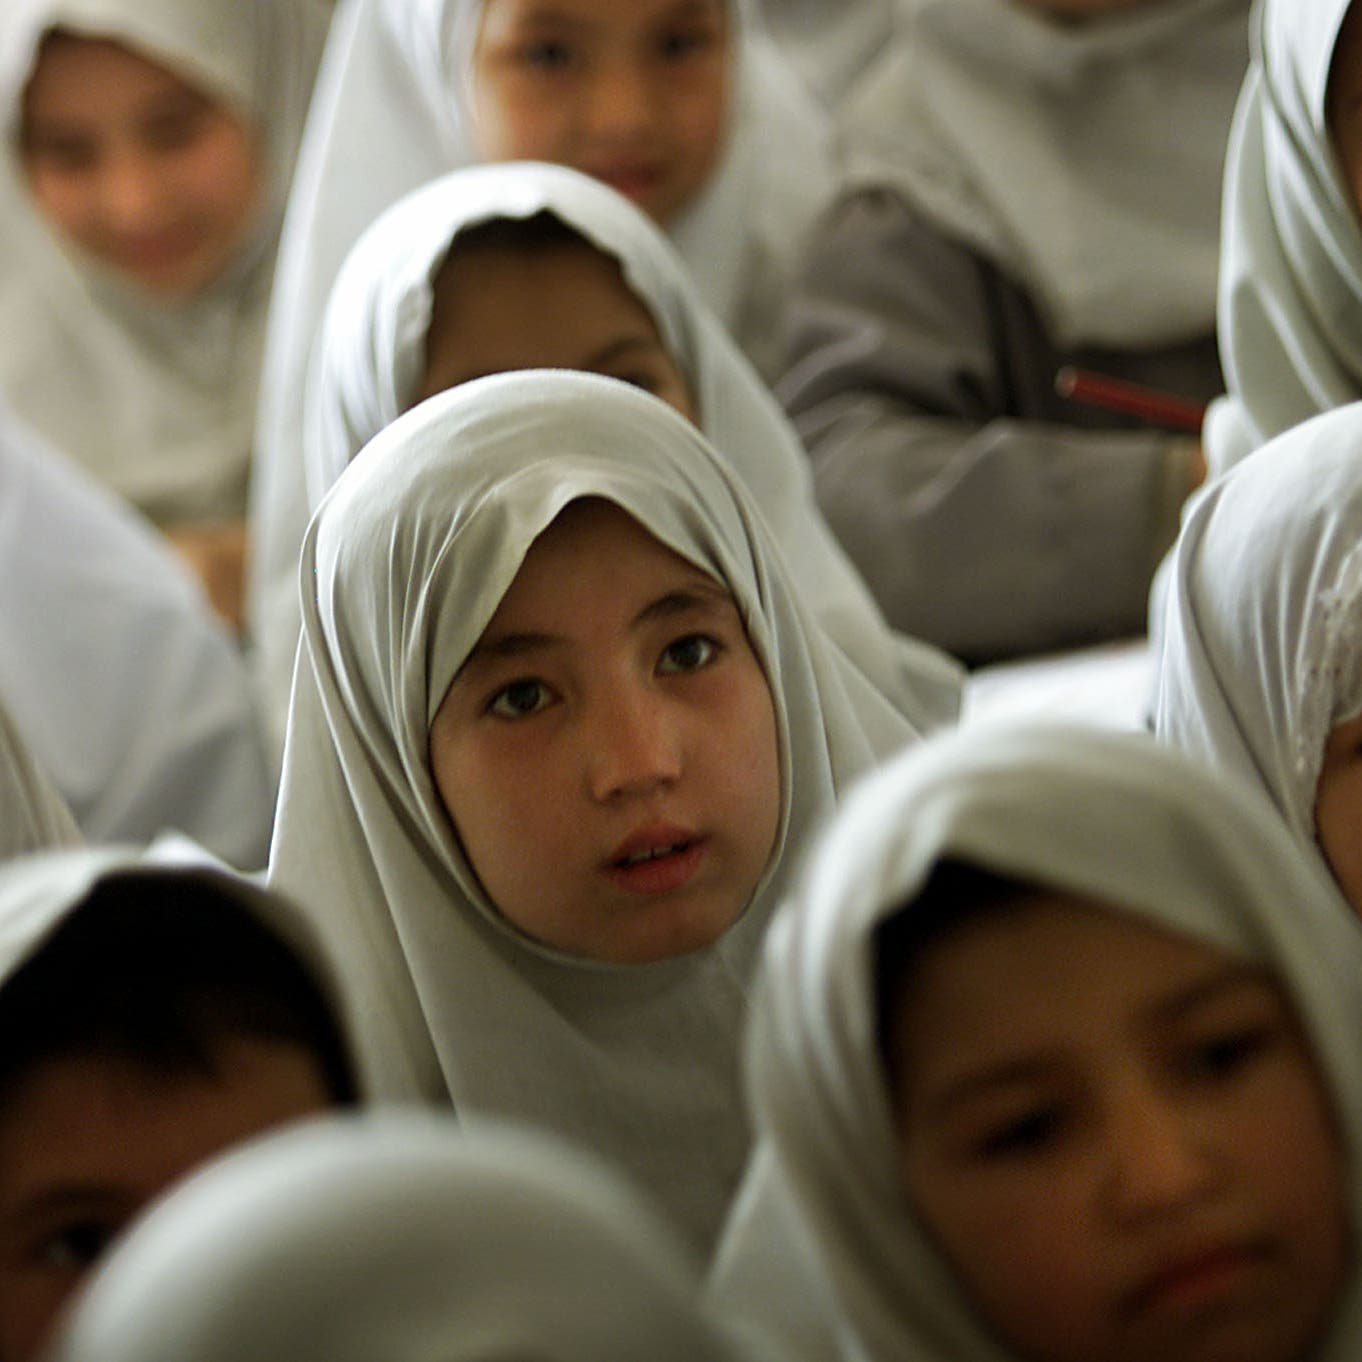 Poverty-stricken Afghans marry off underage girls in exchange for weapons, livestock